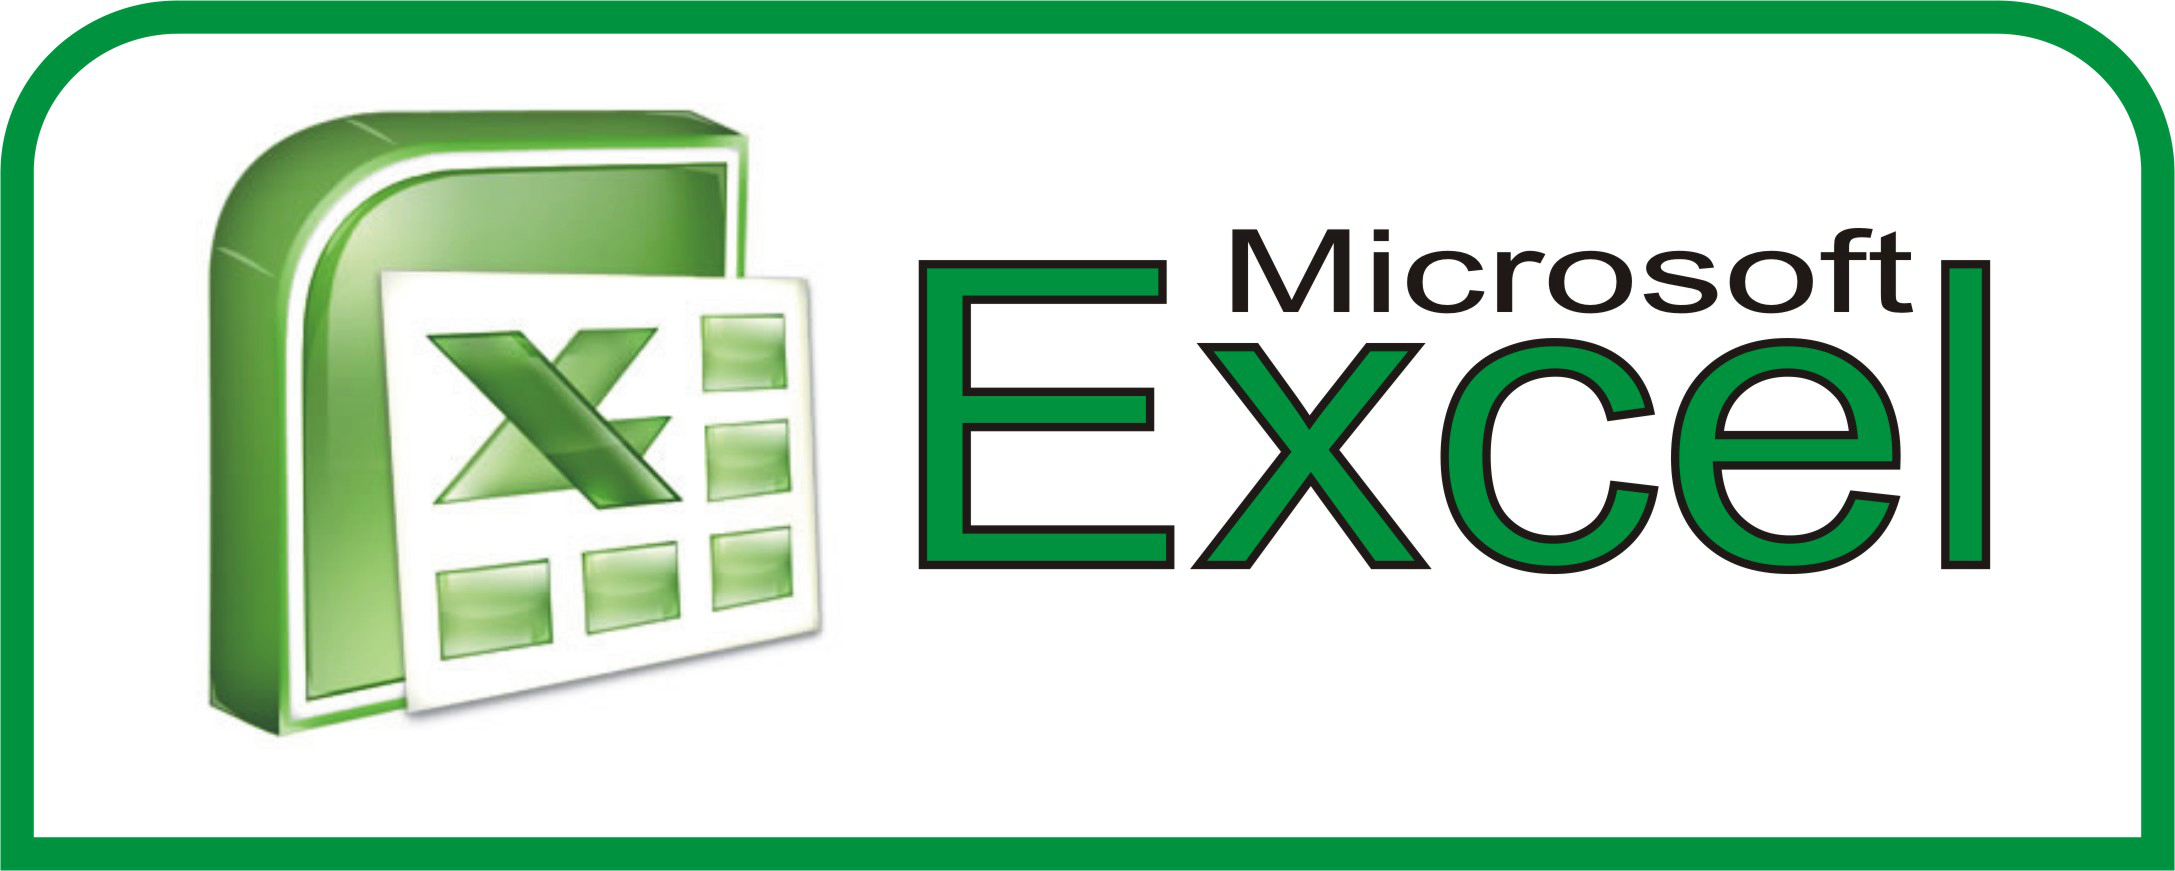 Ediblewildsus  Outstanding  Excel Shortcuts You Probably Didnt Know About  Techdissected With Lovable Best Excel Online Training Besides Payment Template Excel Furthermore Free Microsoft Excel Classes Online With Archaic Add Data Table To Excel Chart Also Population Variance In Excel In Addition Excel Conditional Formatting Formula Examples And Excel Invoice Manager As Well As Web Based Excel Spreadsheet Additionally Excel Vba Copy Formula From Techdissectedcom With Ediblewildsus  Lovable  Excel Shortcuts You Probably Didnt Know About  Techdissected With Archaic Best Excel Online Training Besides Payment Template Excel Furthermore Free Microsoft Excel Classes Online And Outstanding Add Data Table To Excel Chart Also Population Variance In Excel In Addition Excel Conditional Formatting Formula Examples From Techdissectedcom